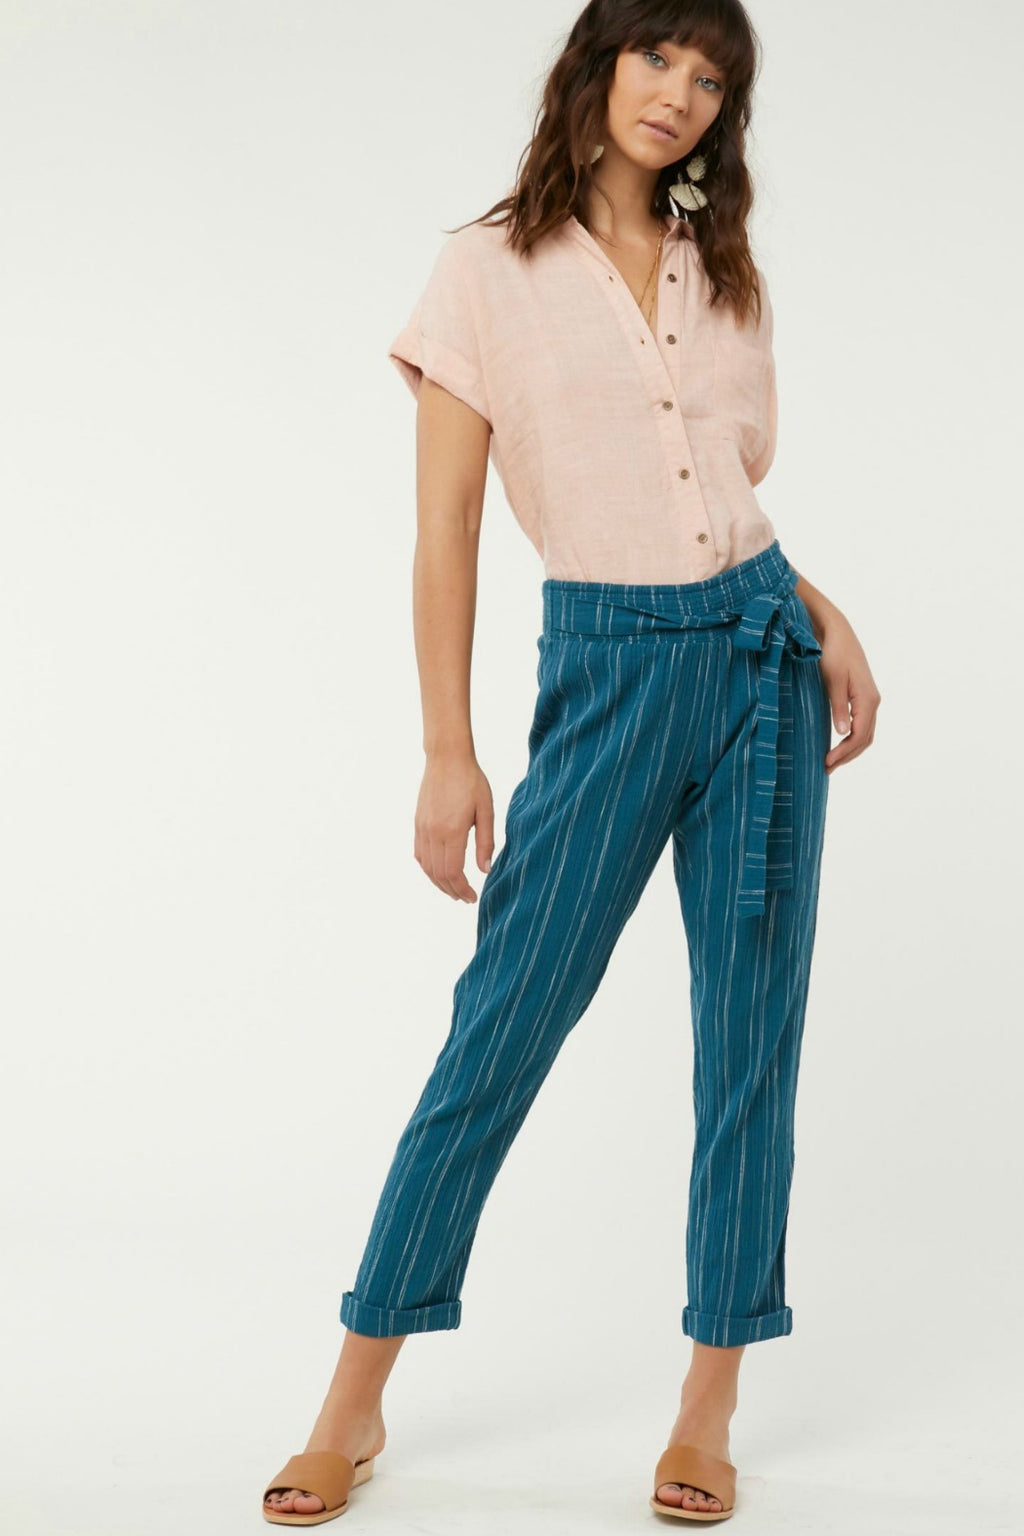 O'Neill Coastal Pants in Stargazer